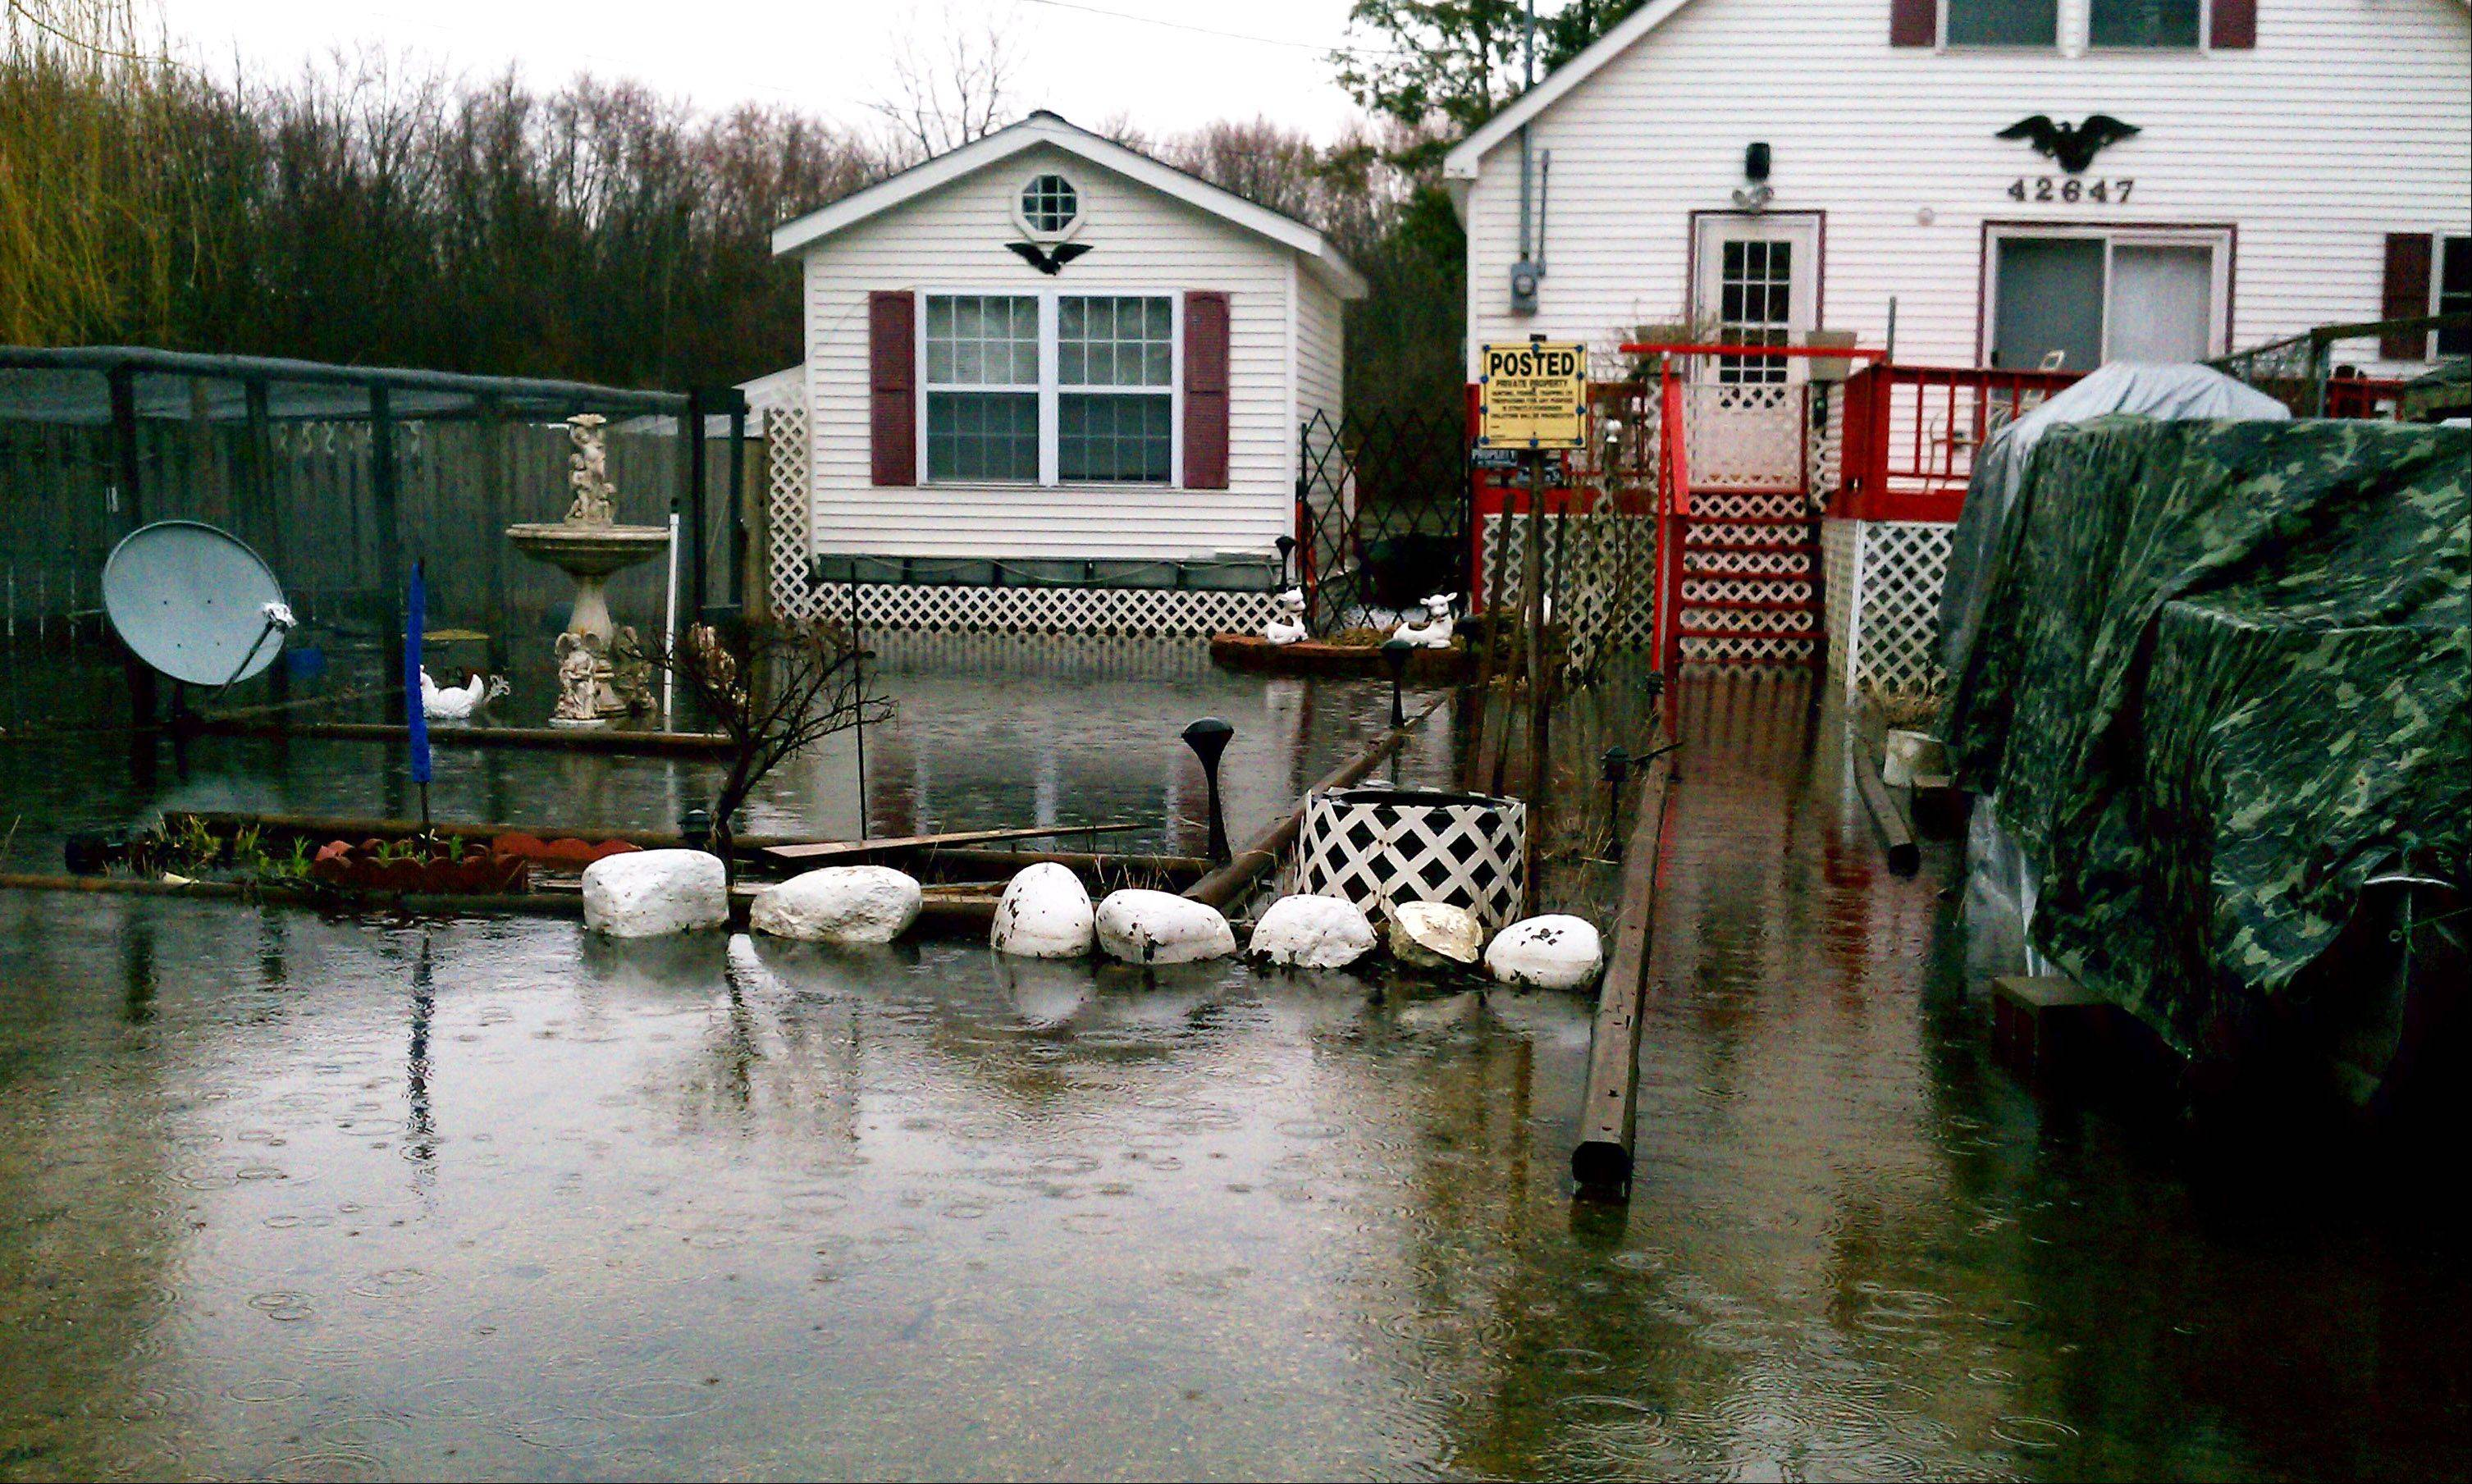 Flooding has begun on Lawson Drive in the Fox River Springs subdivision Wednesday in Antioch Township.